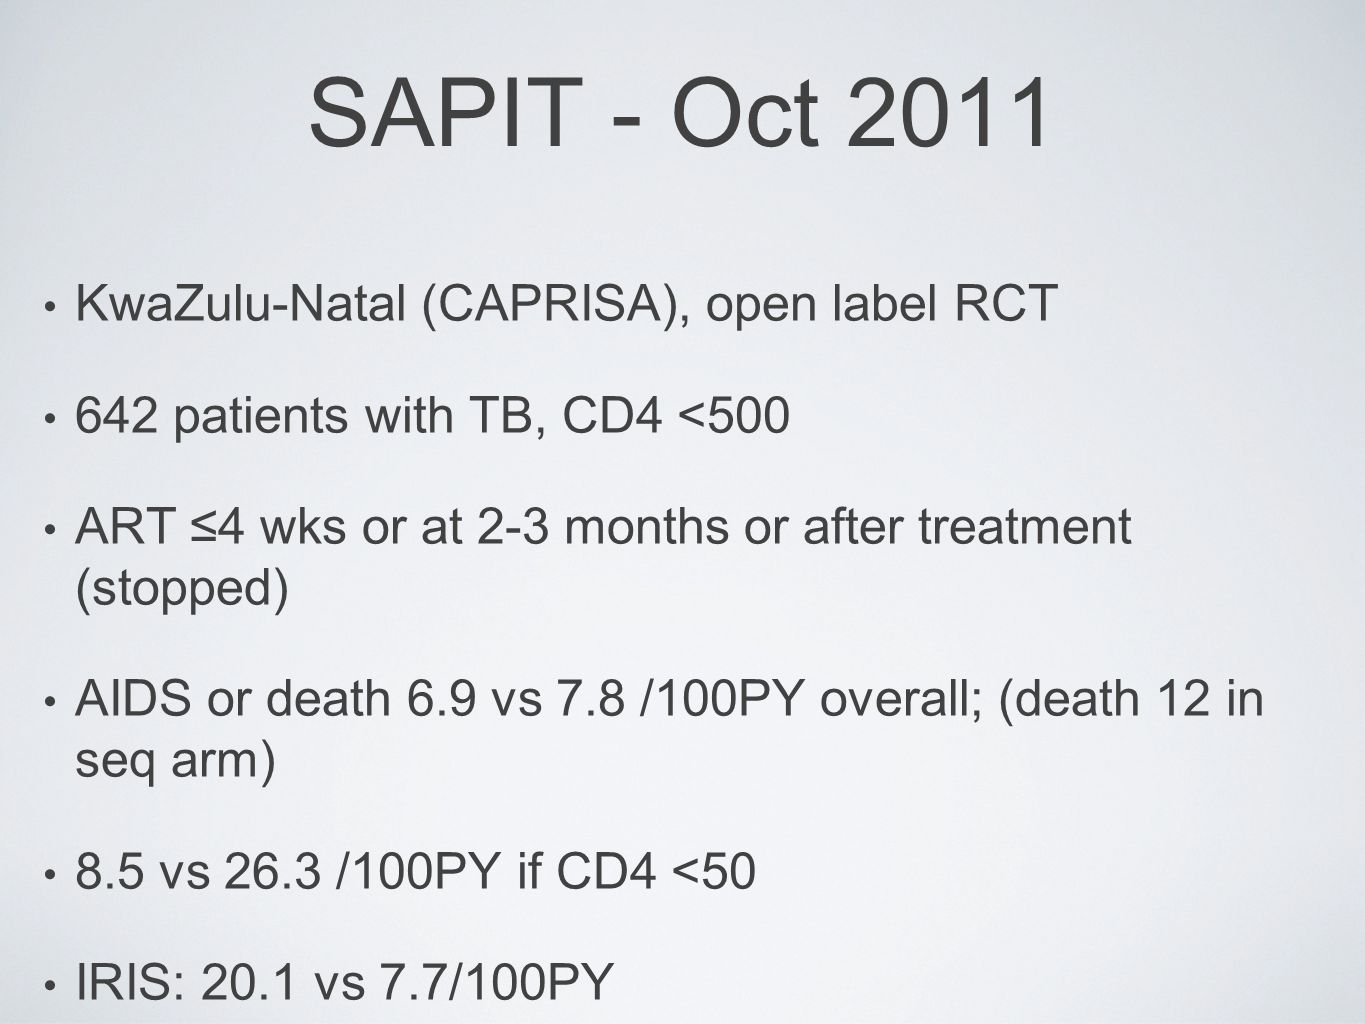 SAPIT - Oct 2011 KwaZulu-Natal (CAPRISA), open label RCT 642 patients with TB, CD4 <500 ART ≤4 wks or at 2-3 months or after treatment (stopped) AIDS